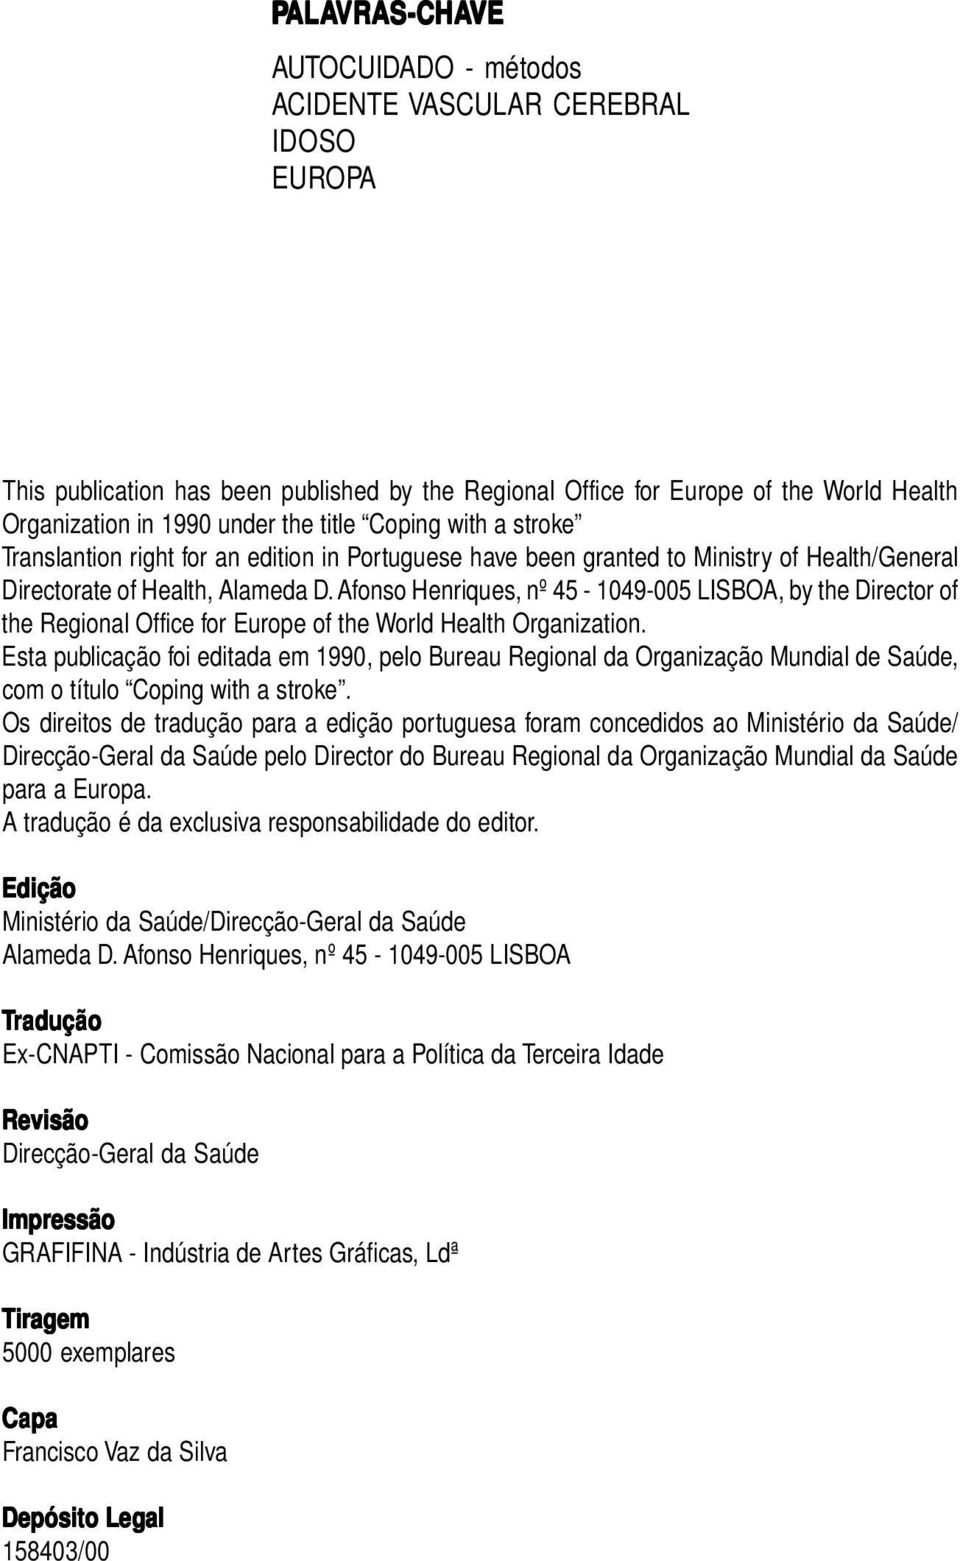 Afonso Henriques, nº 45-1049-005 LISBOA, by the Director of the Regional Office for Europe of the World Health Organization.